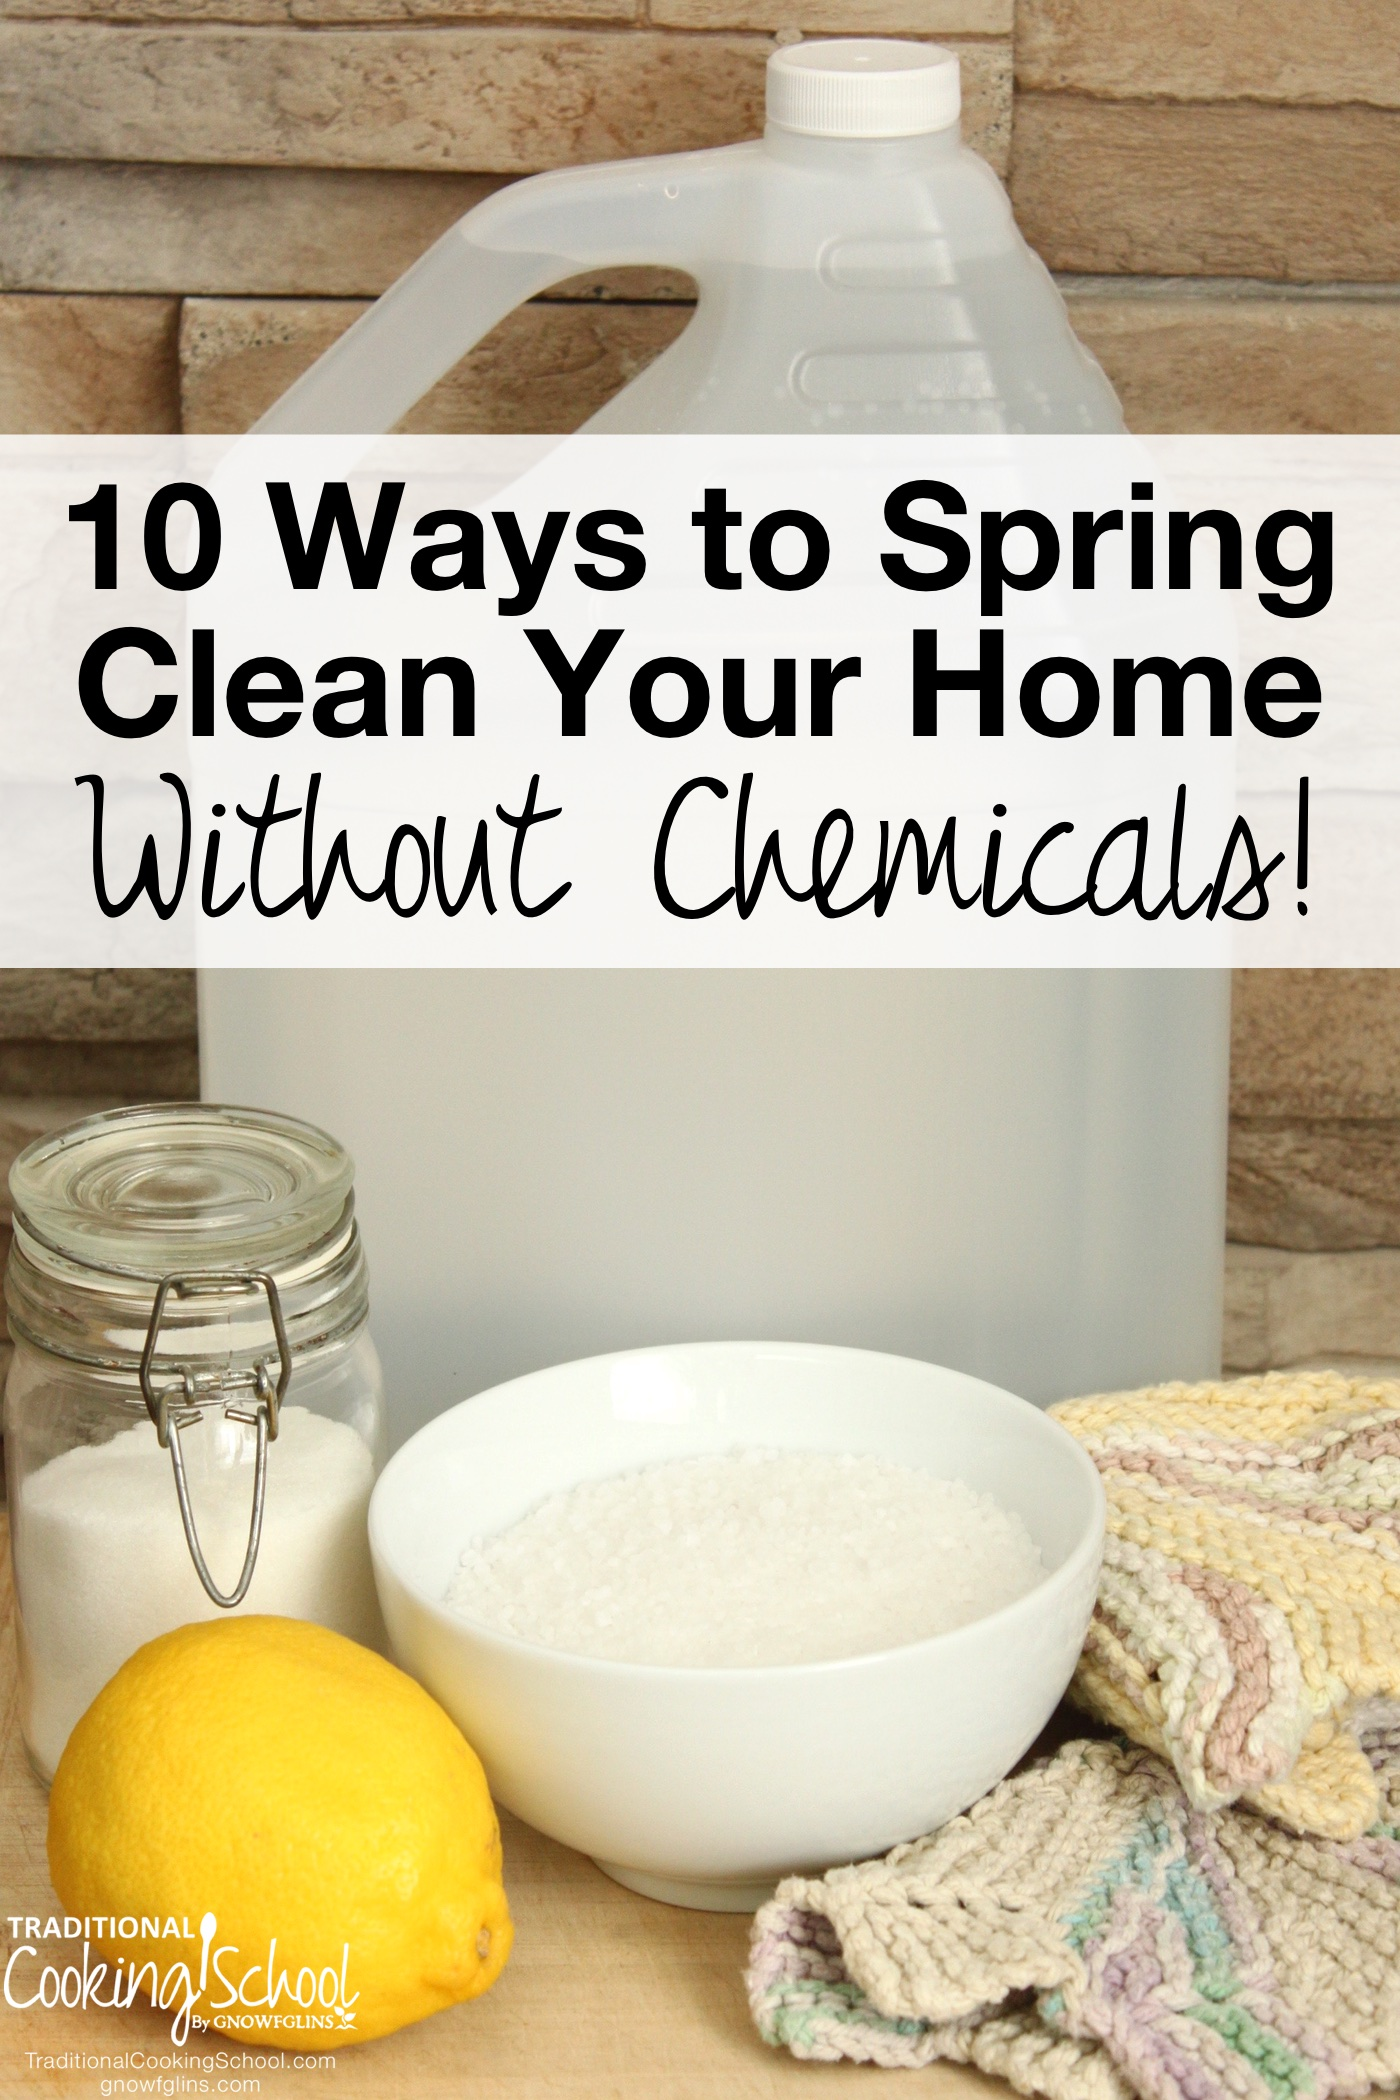 10 Ways To Spring Clean Your Home Without Chemicals   It's spring cleaning time! Did you know that some cleaners may be detrimental to your health? Luckily, you can clean without chemicals -- and your home will shine from top to bottom. Say hello to homemade cleaners! You probably have most of the ingredients already. Here are 10 of the most common areas of your home and how to keep them naturally clean.   TraditionalCookingSchool.com